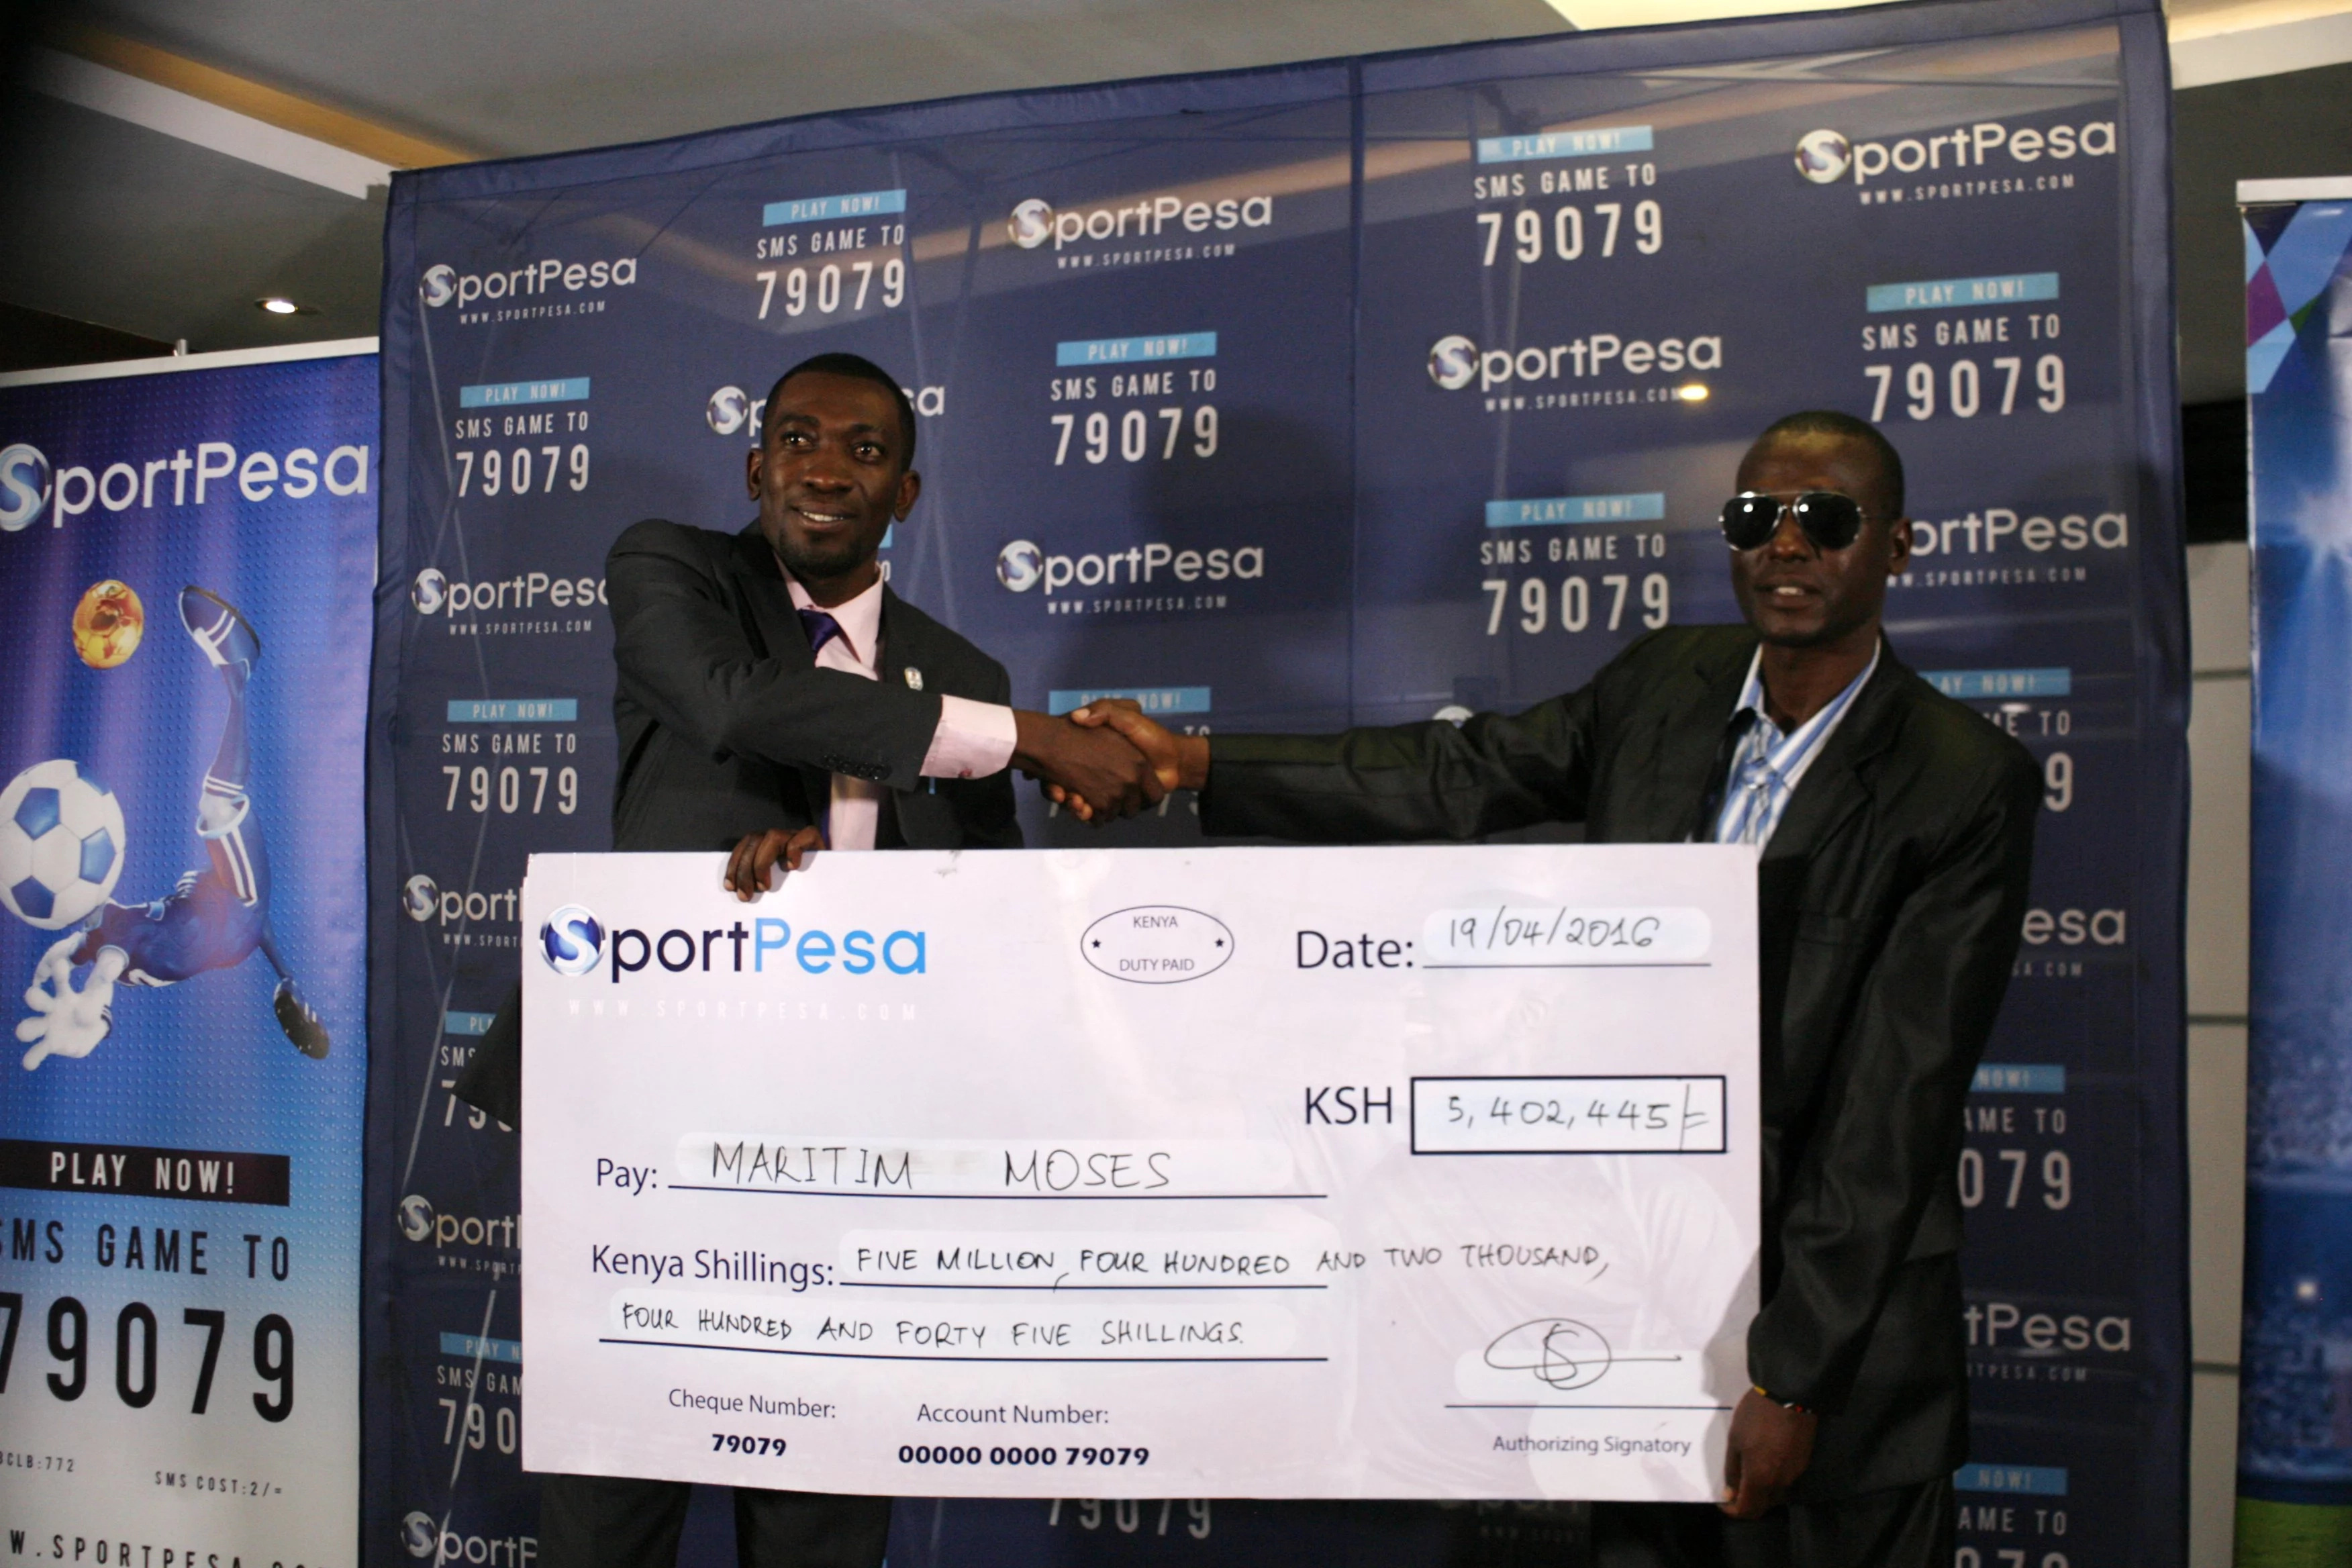 Sportpesa unveils new millionaires in town